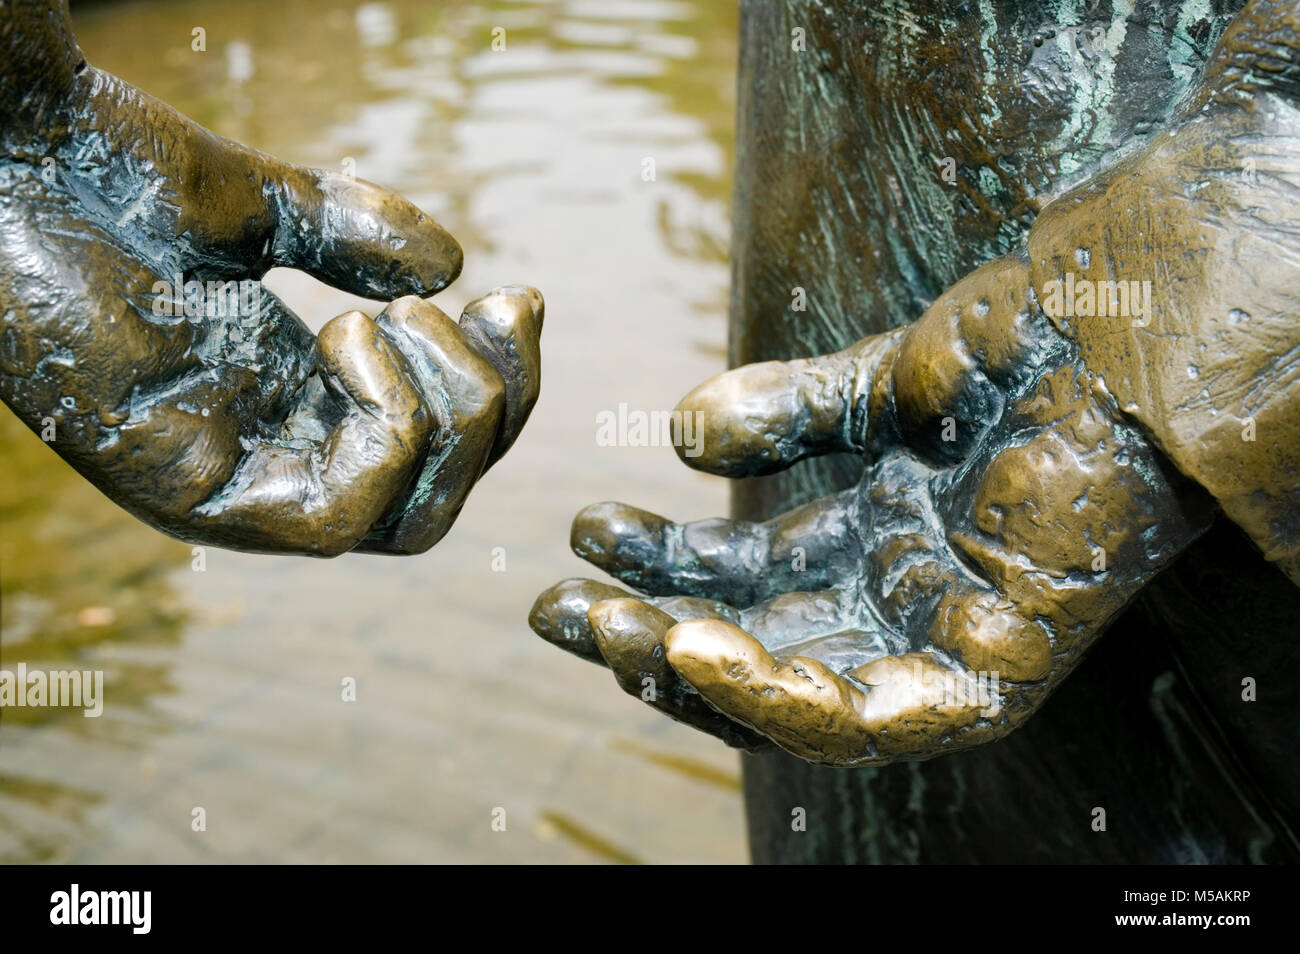 The Geldbrunnen fountain, Aachen or Aix-la-Chapelle, North Rhine-Westphalia, Germany - Stock Image